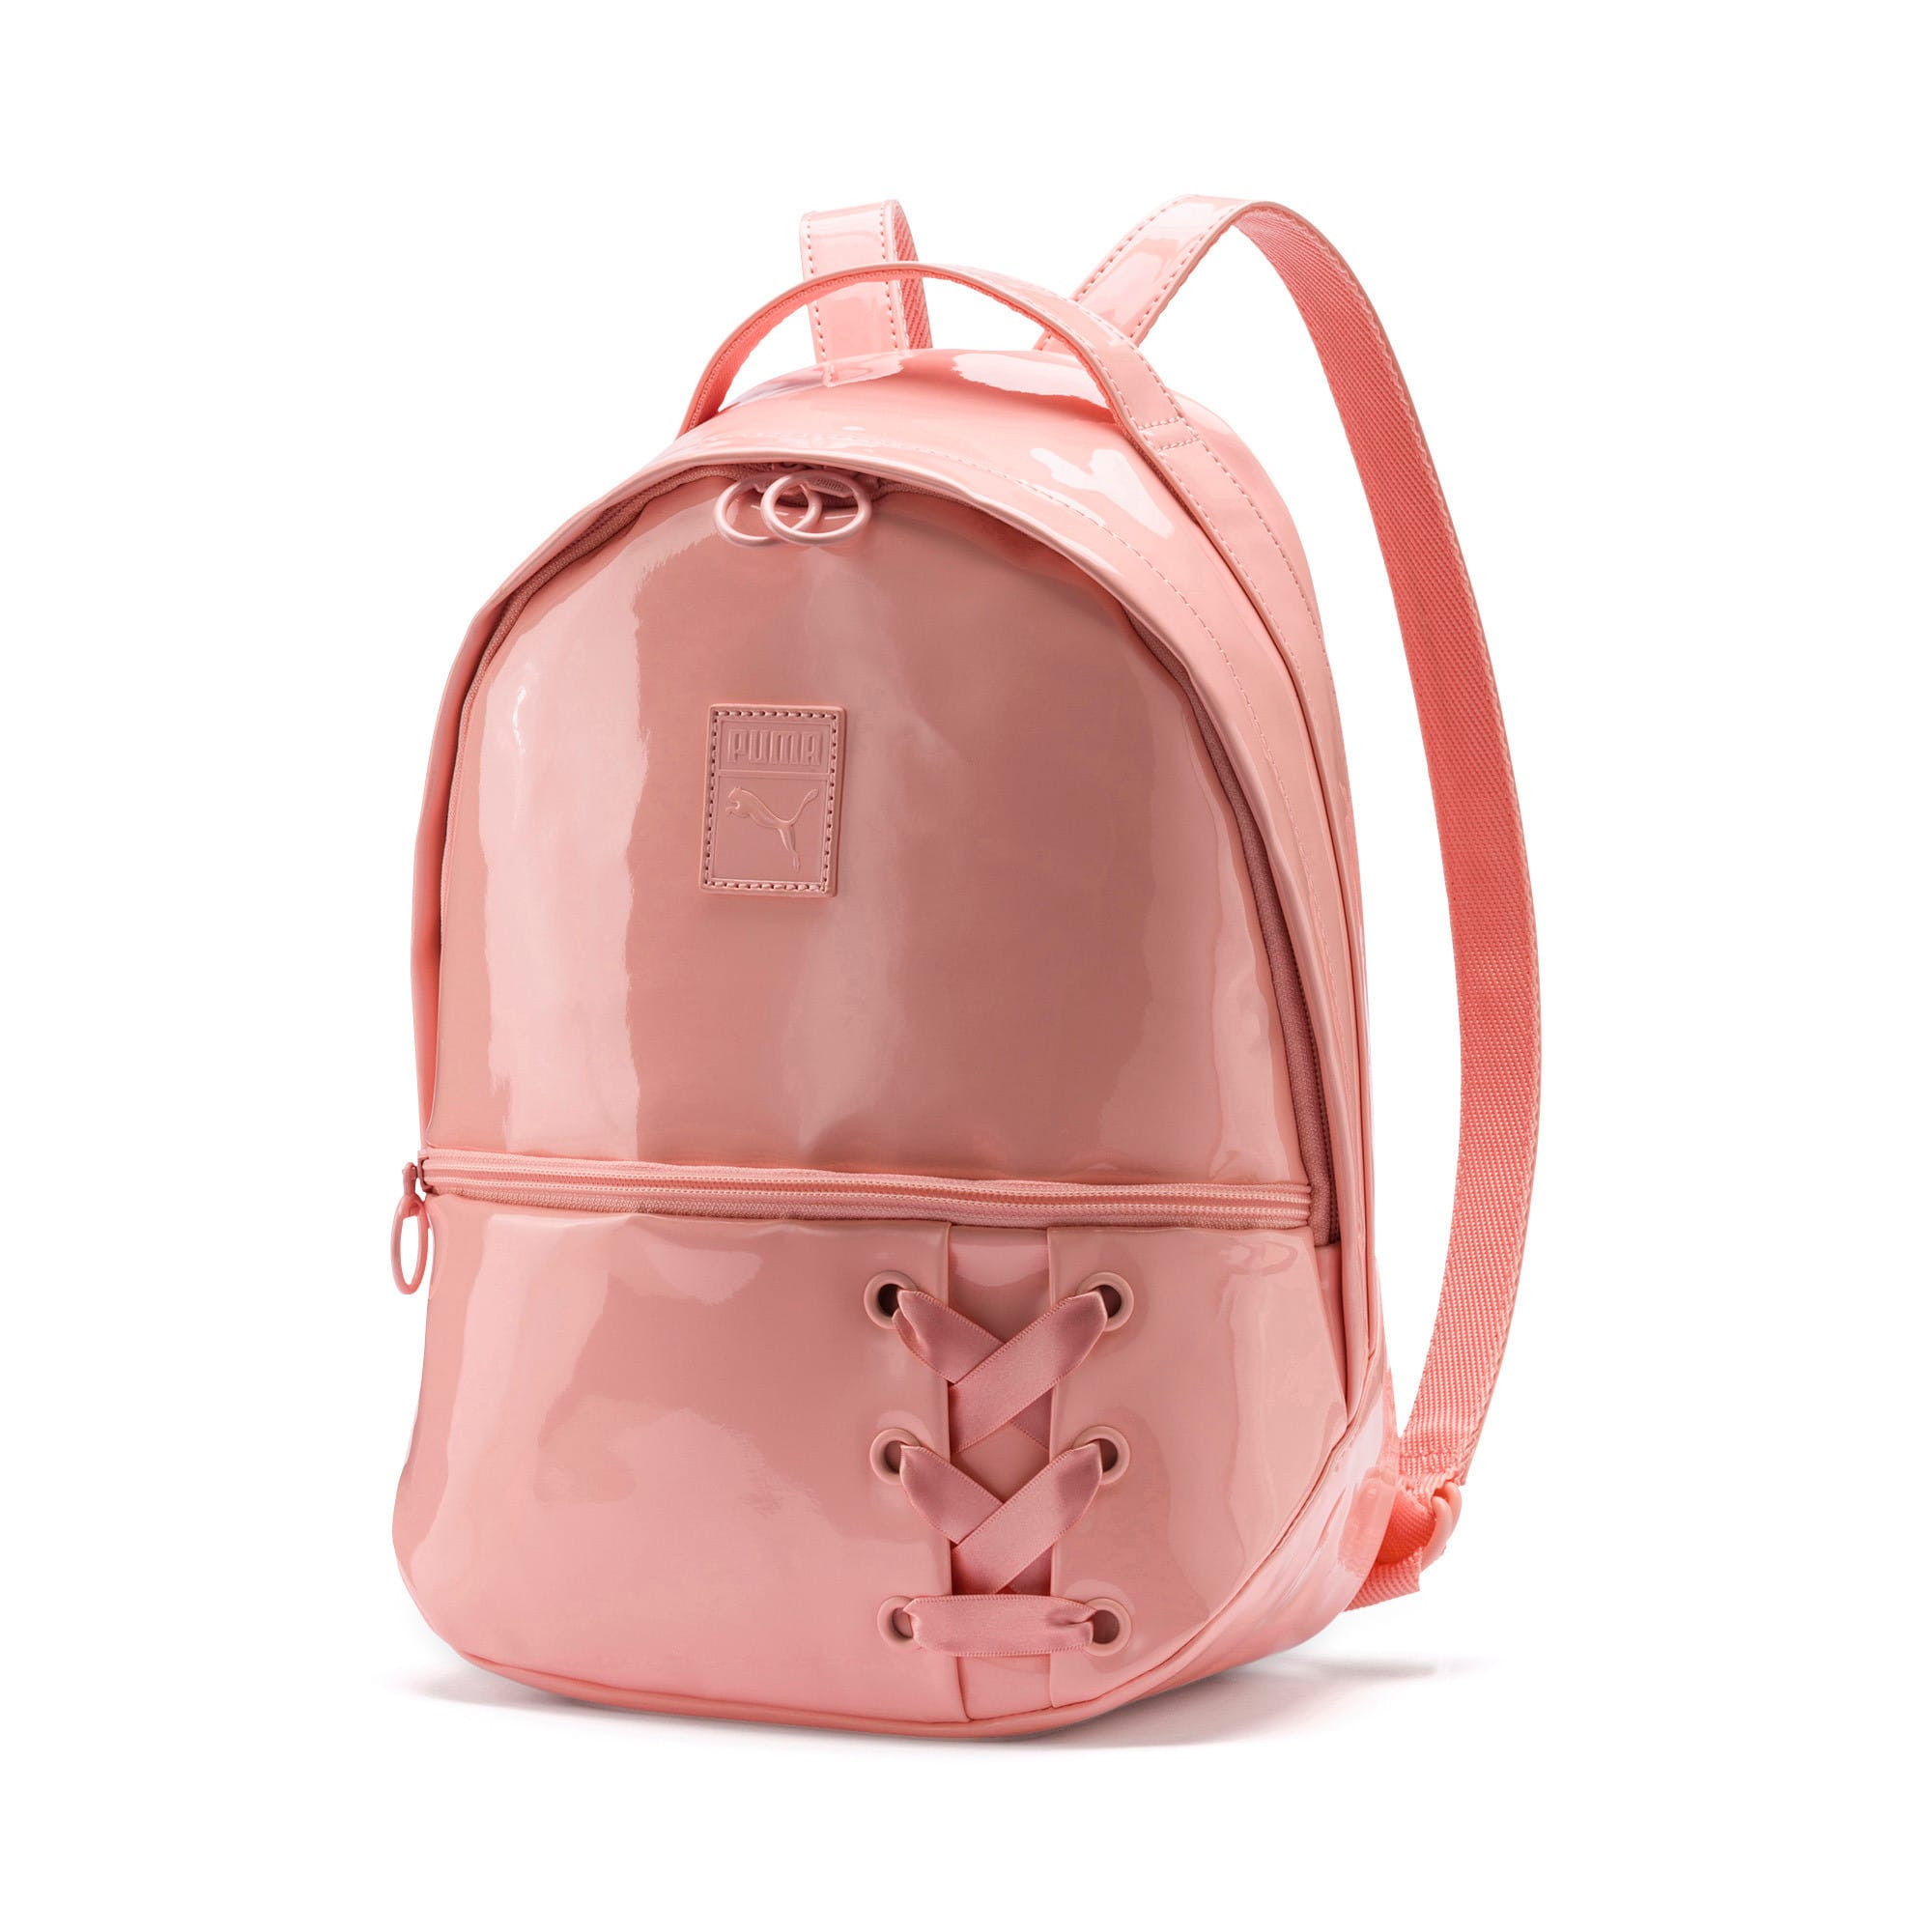 Thumbnail 1 of Prime Archive Crush Backpack, Peach Bud, medium